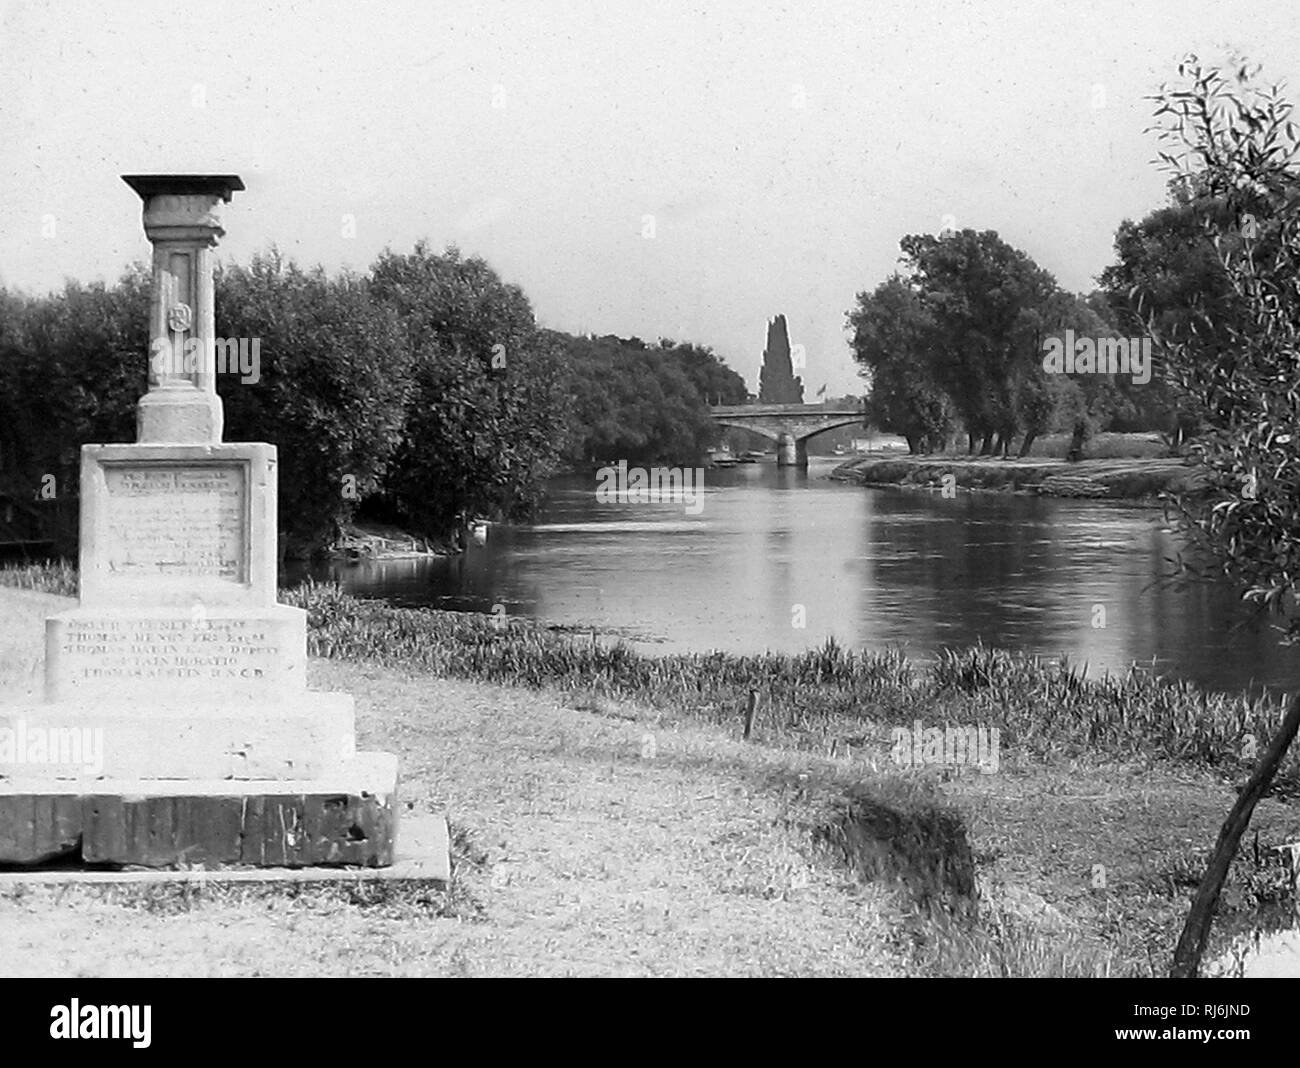 The London Stone, Staines - Stock Image